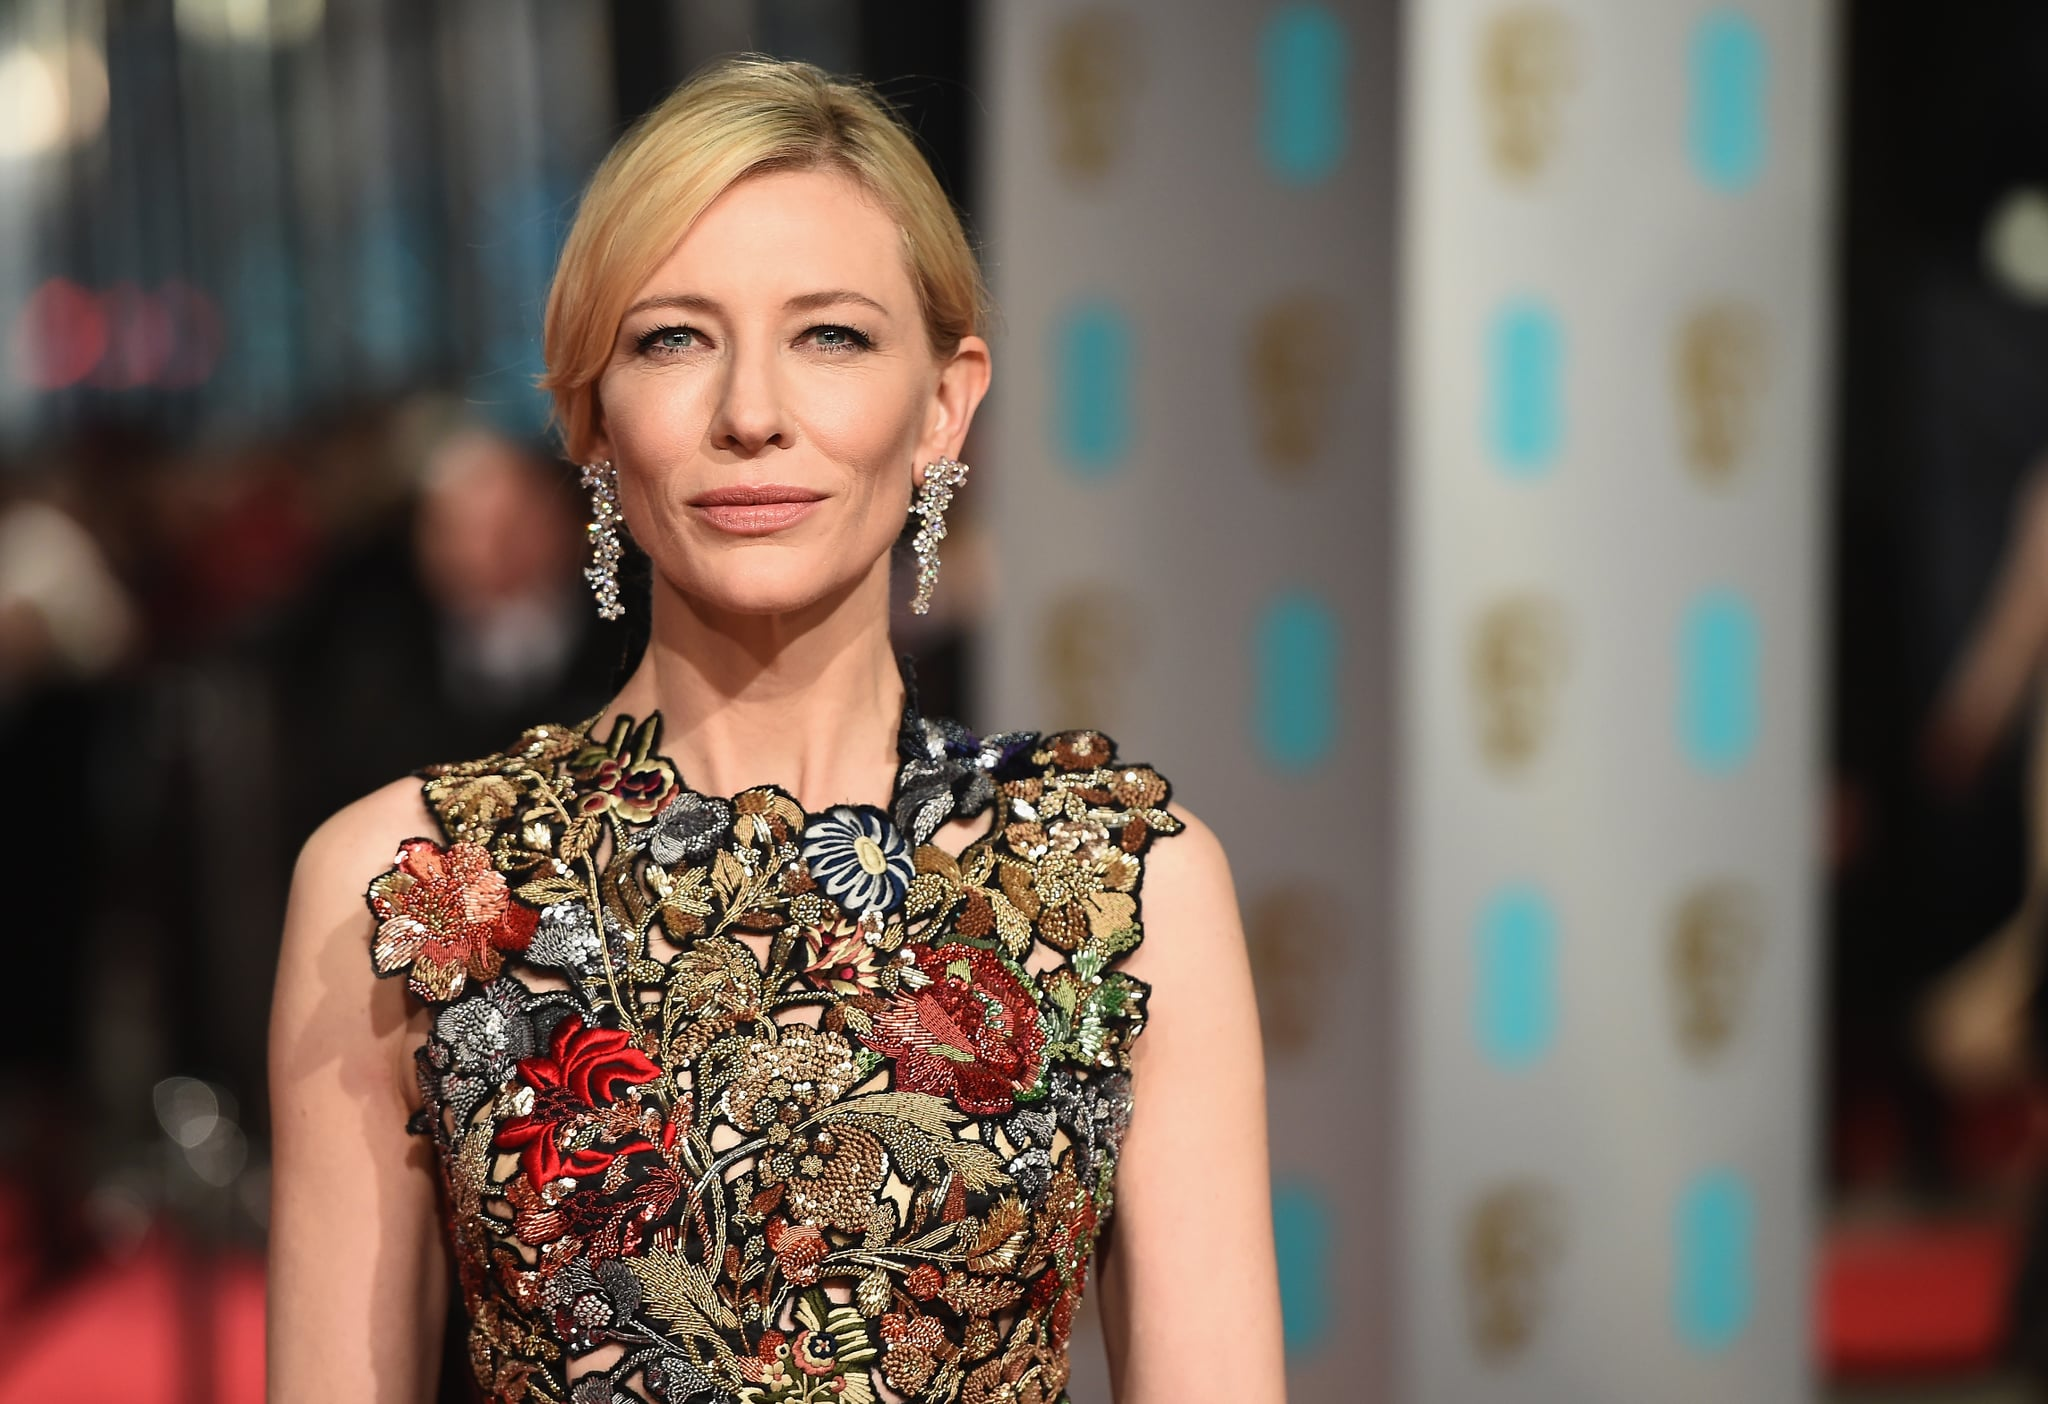 LONDON, ENGLAND - FEBRUARY 14:  Cate Blanchett attends the EE British Academy Film Awards at the Royal Opera House on February 14, 2016 in London, England.  (Photo by Ian Gavan/Getty Images)